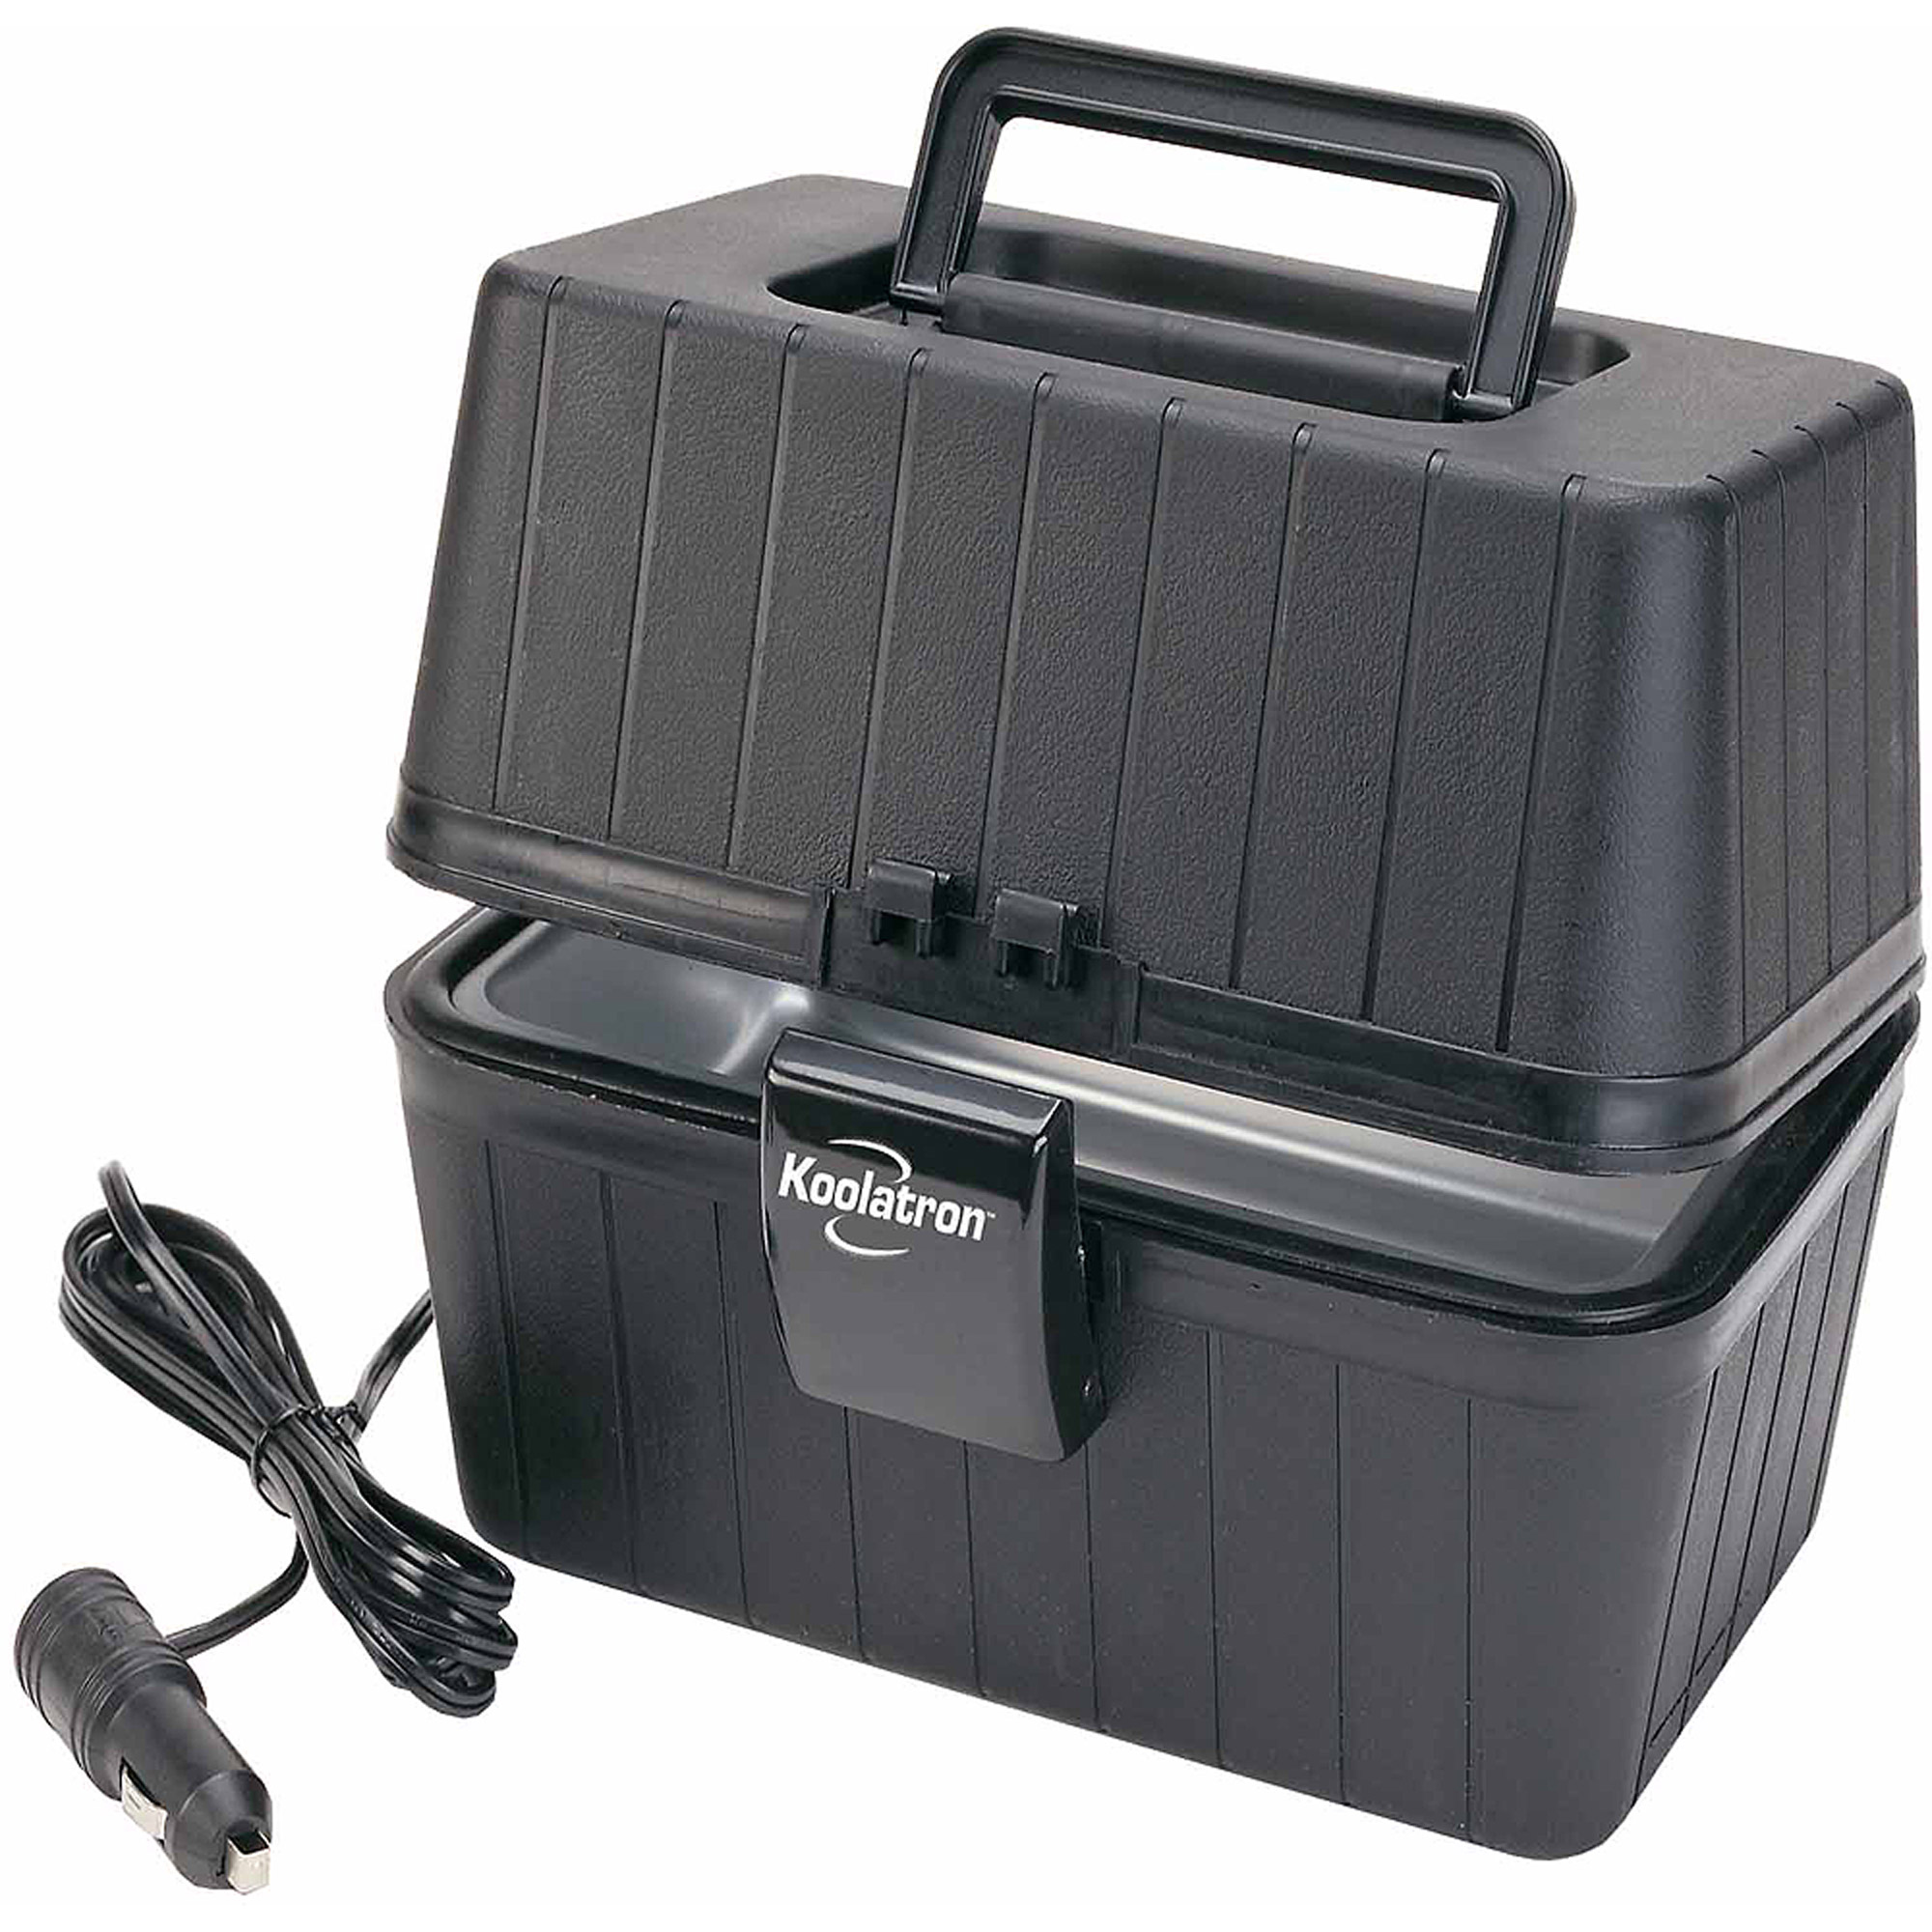 Portable Battery Heater Koolatron 12 Volt Lunch Box Stove Walmartcom